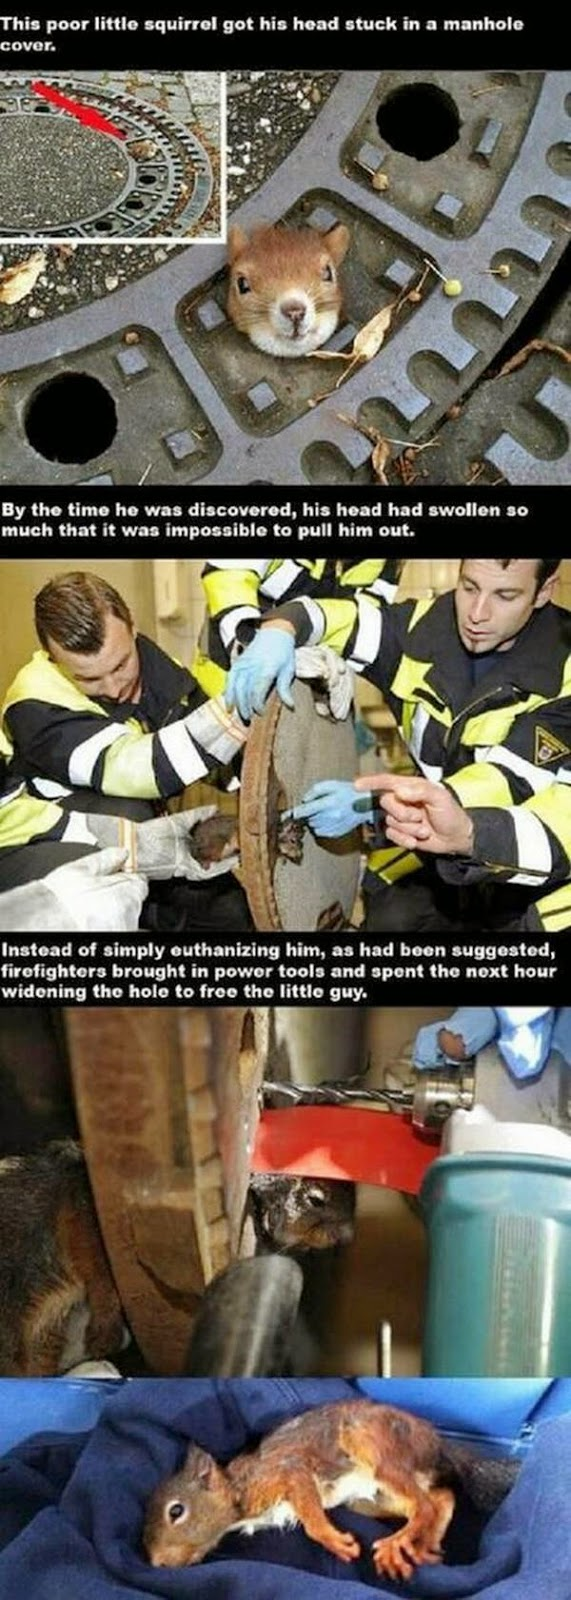 People doing amazing things for animals (28 pics), firefighters rescued a squirrel stuck his head on a manhole